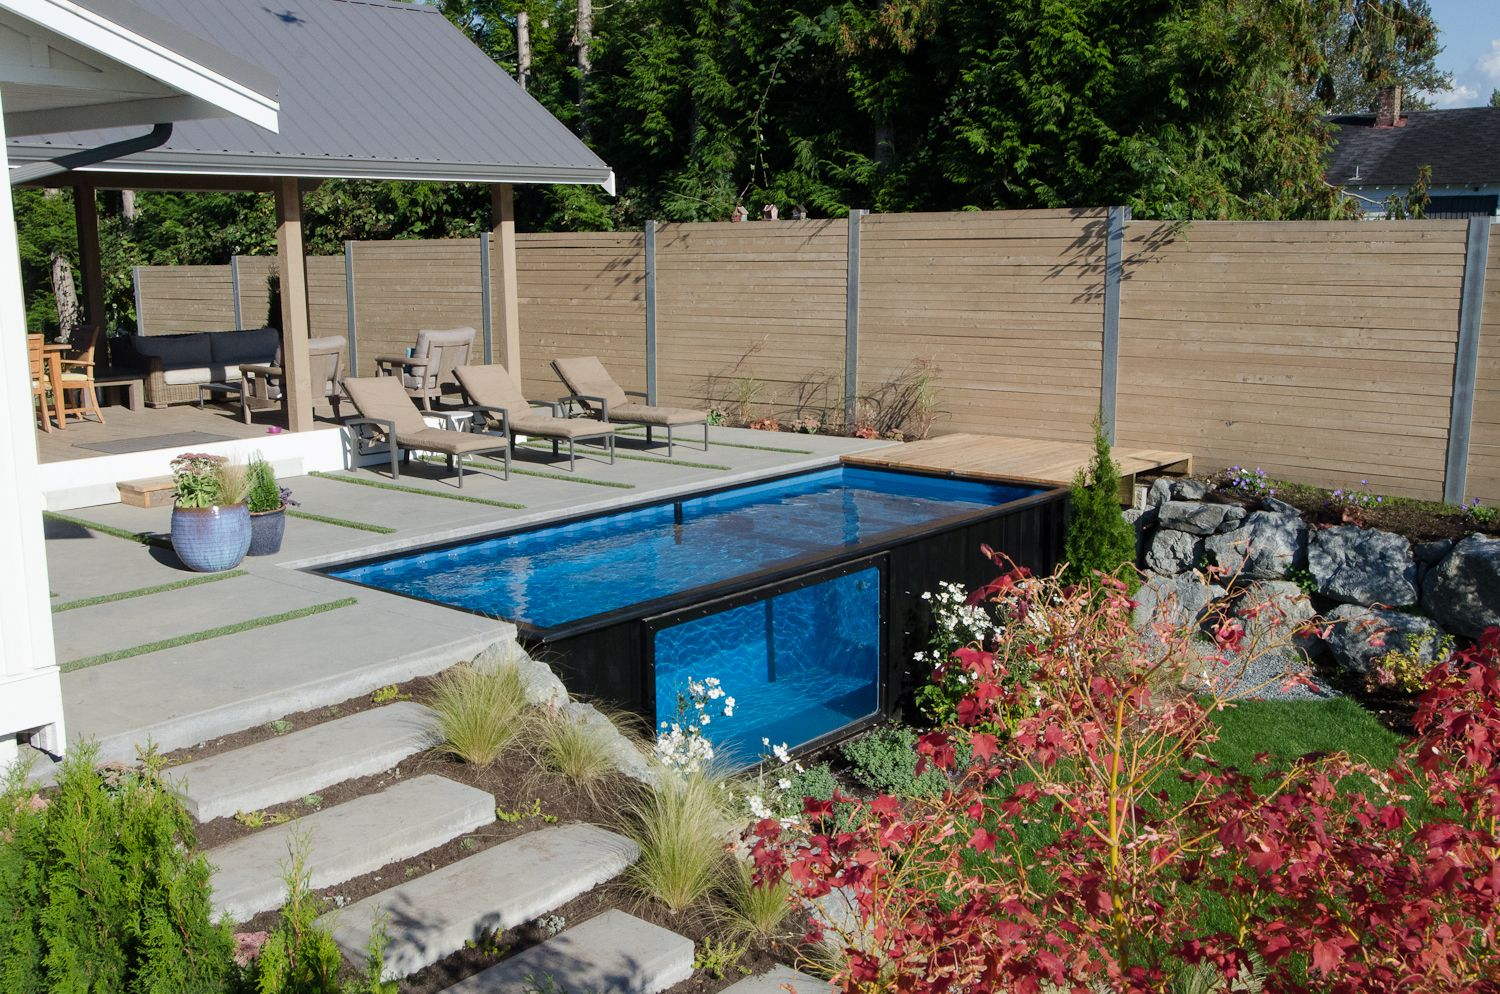 22 In Ground Pool Designs Best Swimming Pool Design Ideas For Your with 10 Some of the Coolest Ways How to Build Backyard With Pool Ideas